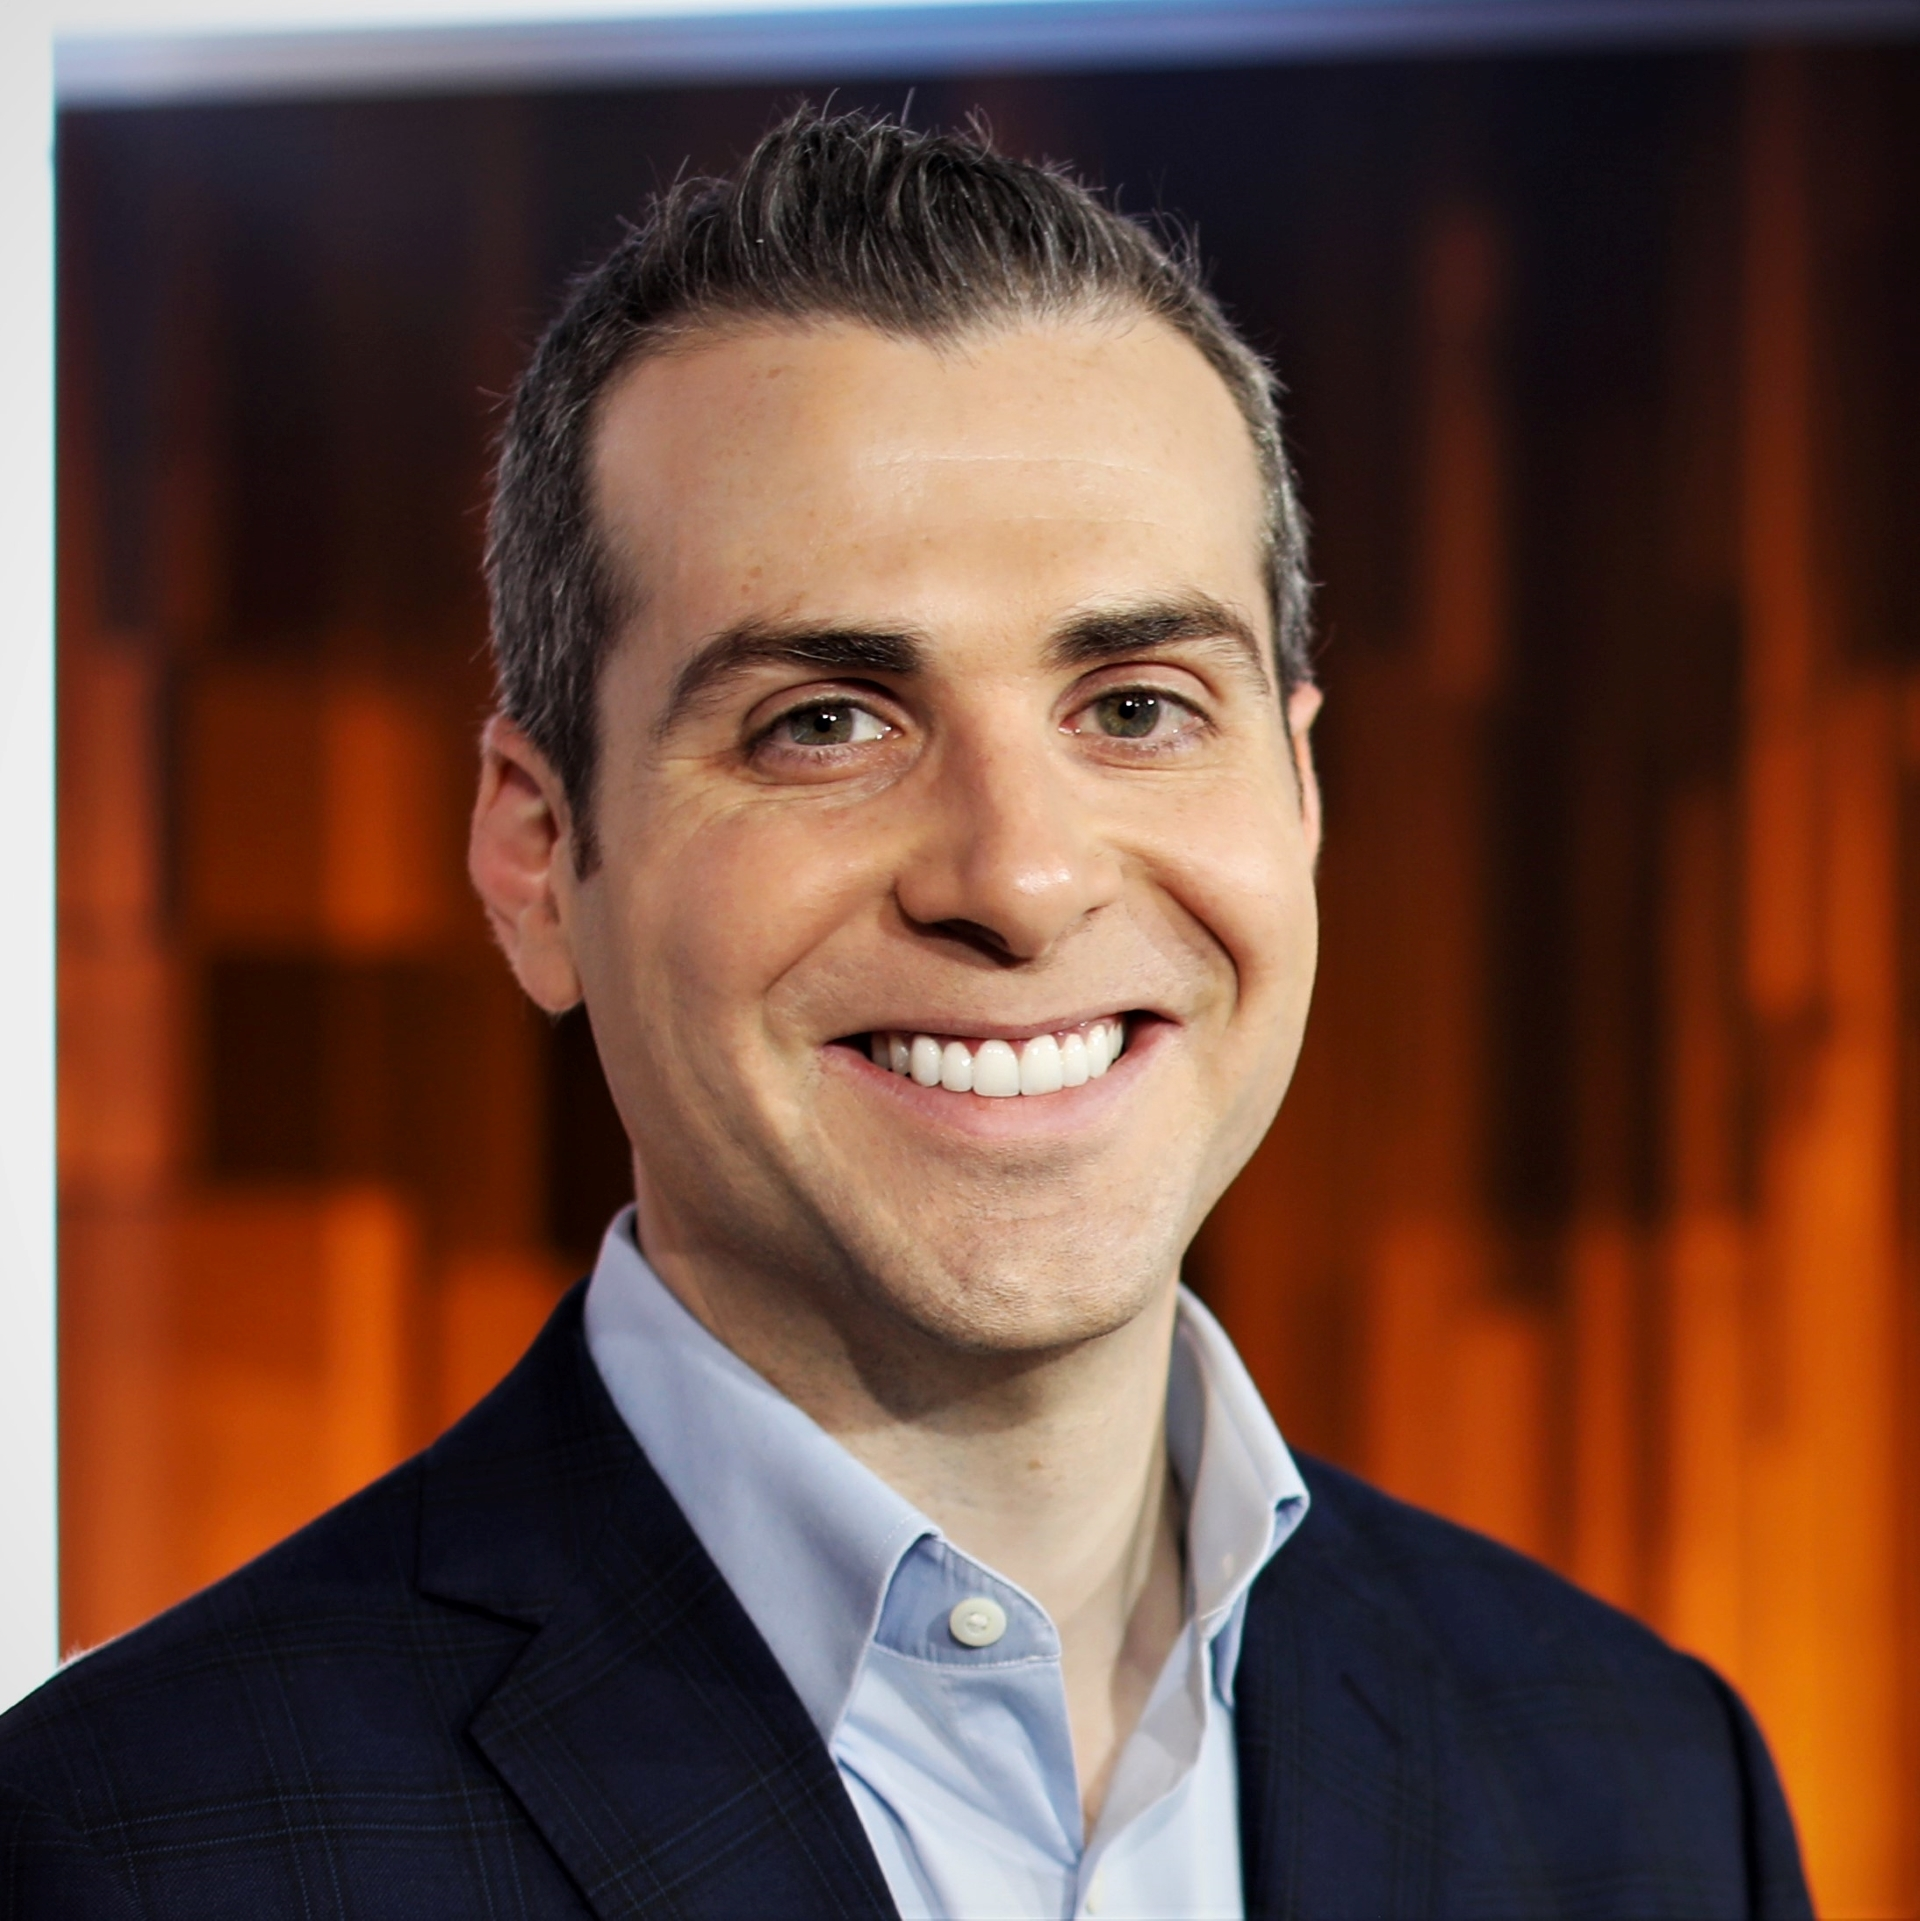 """Steve Gelbs joined Gary Cohen, Keith Hernandez and Ron Darling in 2015 as member of SNY's Emmy Award winning Mets broadcast team.  In addition to his role as Mets Field Reporter, Gelbs was recently named SNY's Jets Studio Programming Host, which includes SNY's exclusive pre- and post-game shows throughout the Jets season. Gelbs joined SNY in 2013 as an anchor and sport reporter contributing to the network's sports and entertainment shows. He is also a regular contributor to SNY's Mets pre-and post-game shows, Baseball Night in New York and Mets Hot Stove.  Prior to joining SNY, Steve spent a year and a half at MSG Network, as well as four years at MSG Varsity in New York. On the TV side at MSG Network, Steve served as a host of the """"MSG 150"""" during Knicks and Rangers telecasts, as well as a host for the network's College Basketball coverage. On MSG Radio Network, Steve handled the pre-game, post-game and intermission reports for Rangers Broadcasts - which aired on ESPN Radio in New York. In his four years at MSG Varsity, Steve was utilized in several different capacities. He was an anchor, host, feature & sideline reporter, play-by-play announcer and color commentator. While at MSG Varsity, Steve was nominated for 4 New York Emmys, including """"Sports Anchor of the Year"""" in 2012.  Steve graduated Syracuse University's Newhouse School of Public Communications in 2009, with a bachelor's degree in Broadcast Journalism. He won the Syracuse Press Club Award for """"Best Radio Sports Feature,"""" in 2009."""